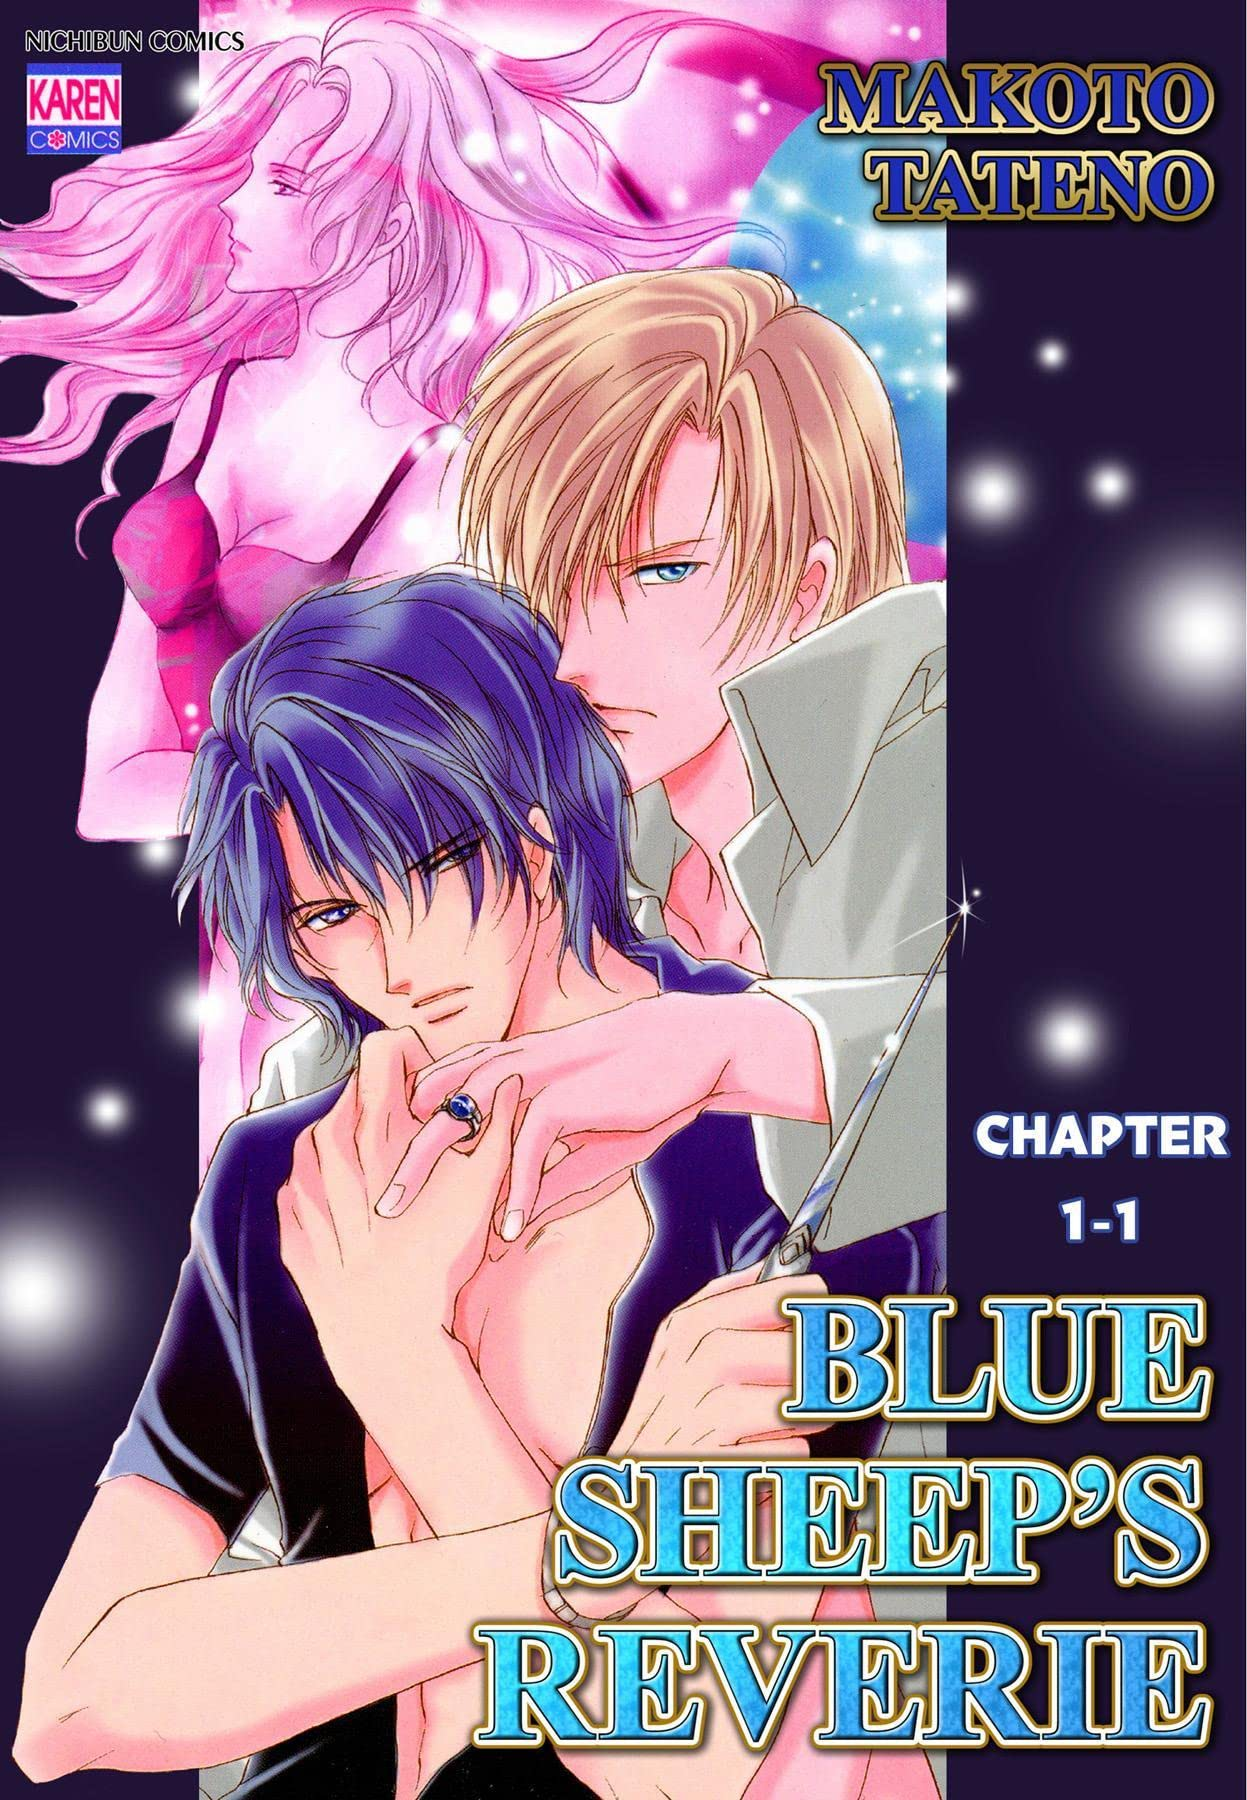 BLUE SHEEP'S REVERIE (Yaoi Manga) #1